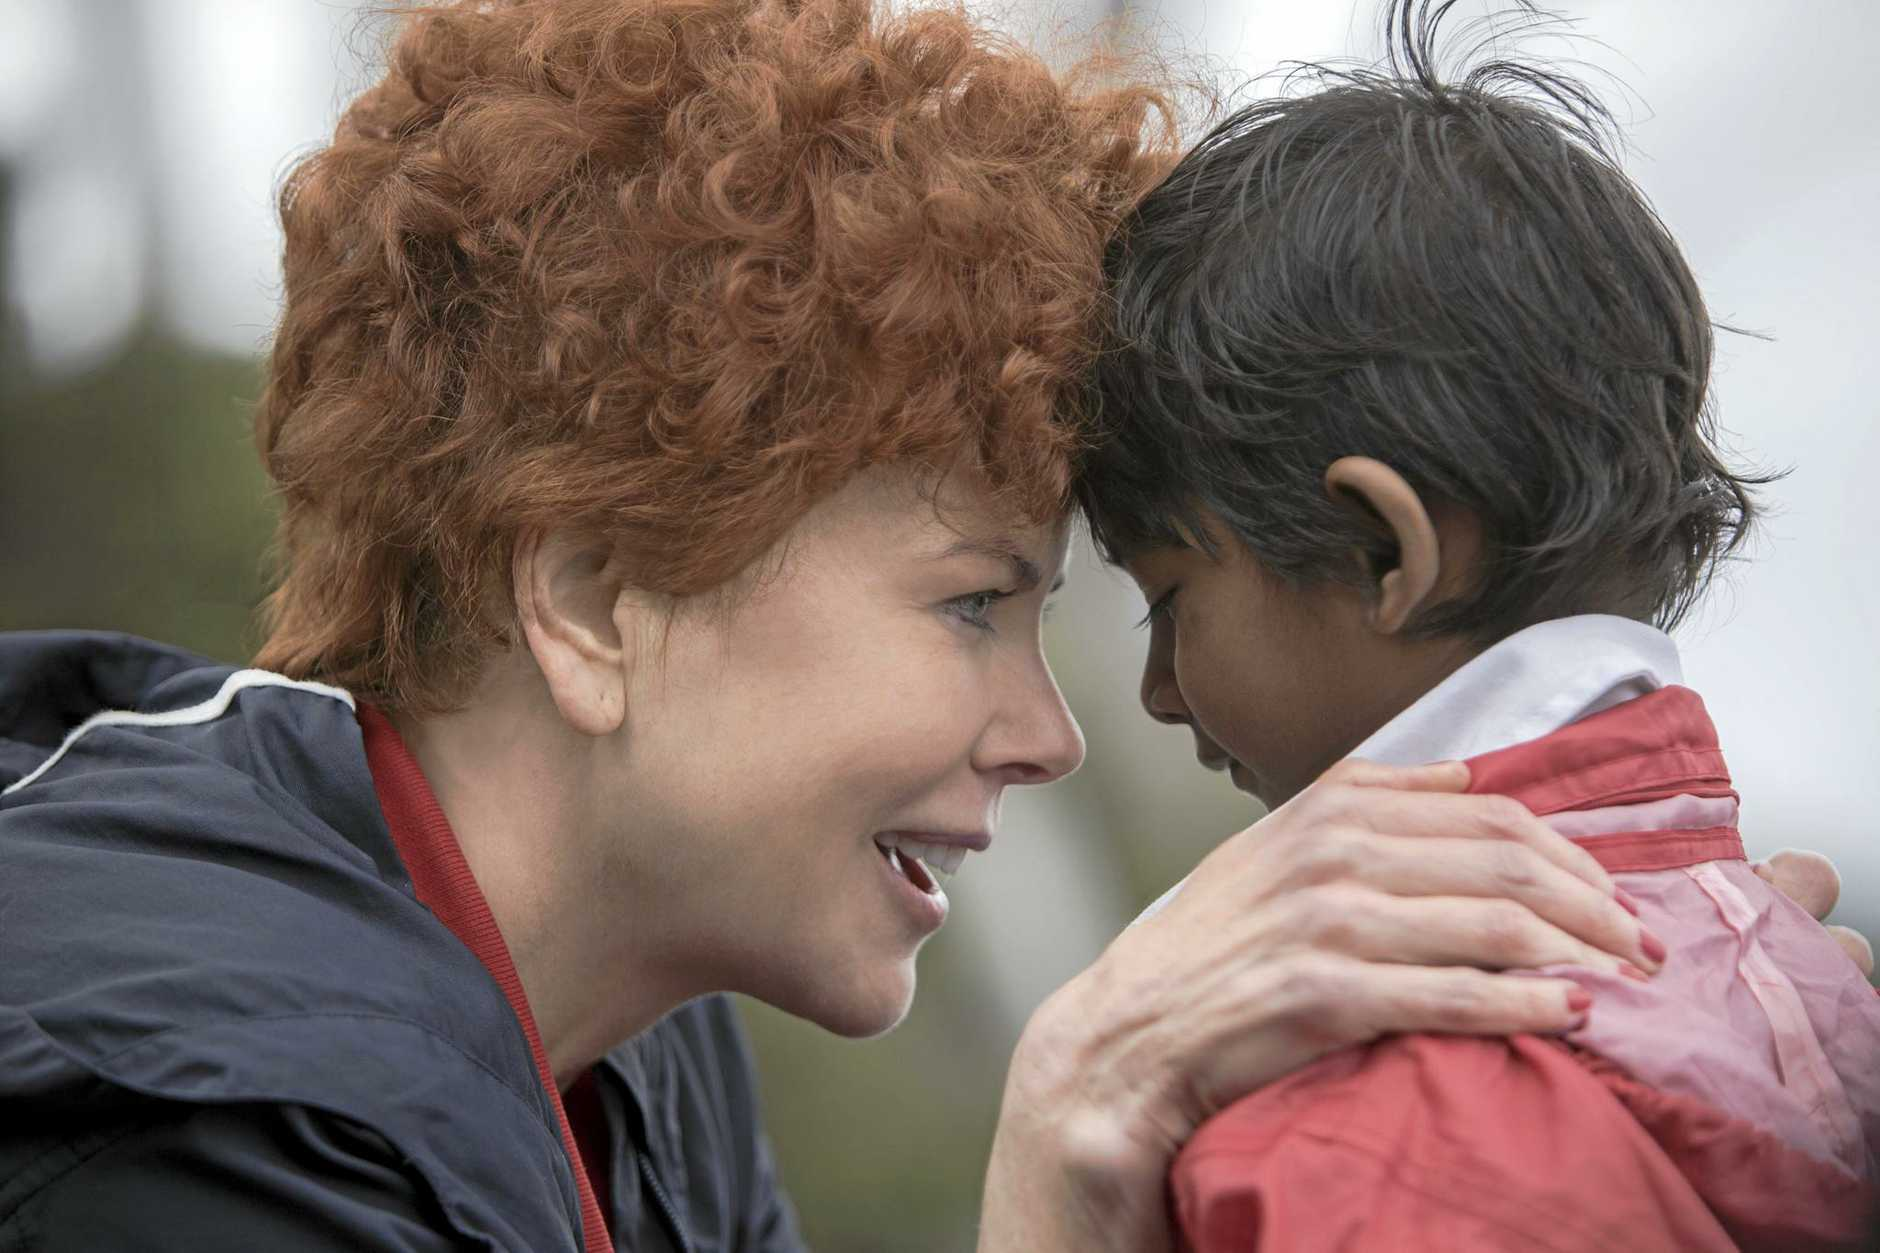 FOR REVIEW AND PREVIEW PURPOSES ONLY. Nicole Kidman and Sunny Pawar in a scene from the movie Lion. Supplied by Transmission Films.